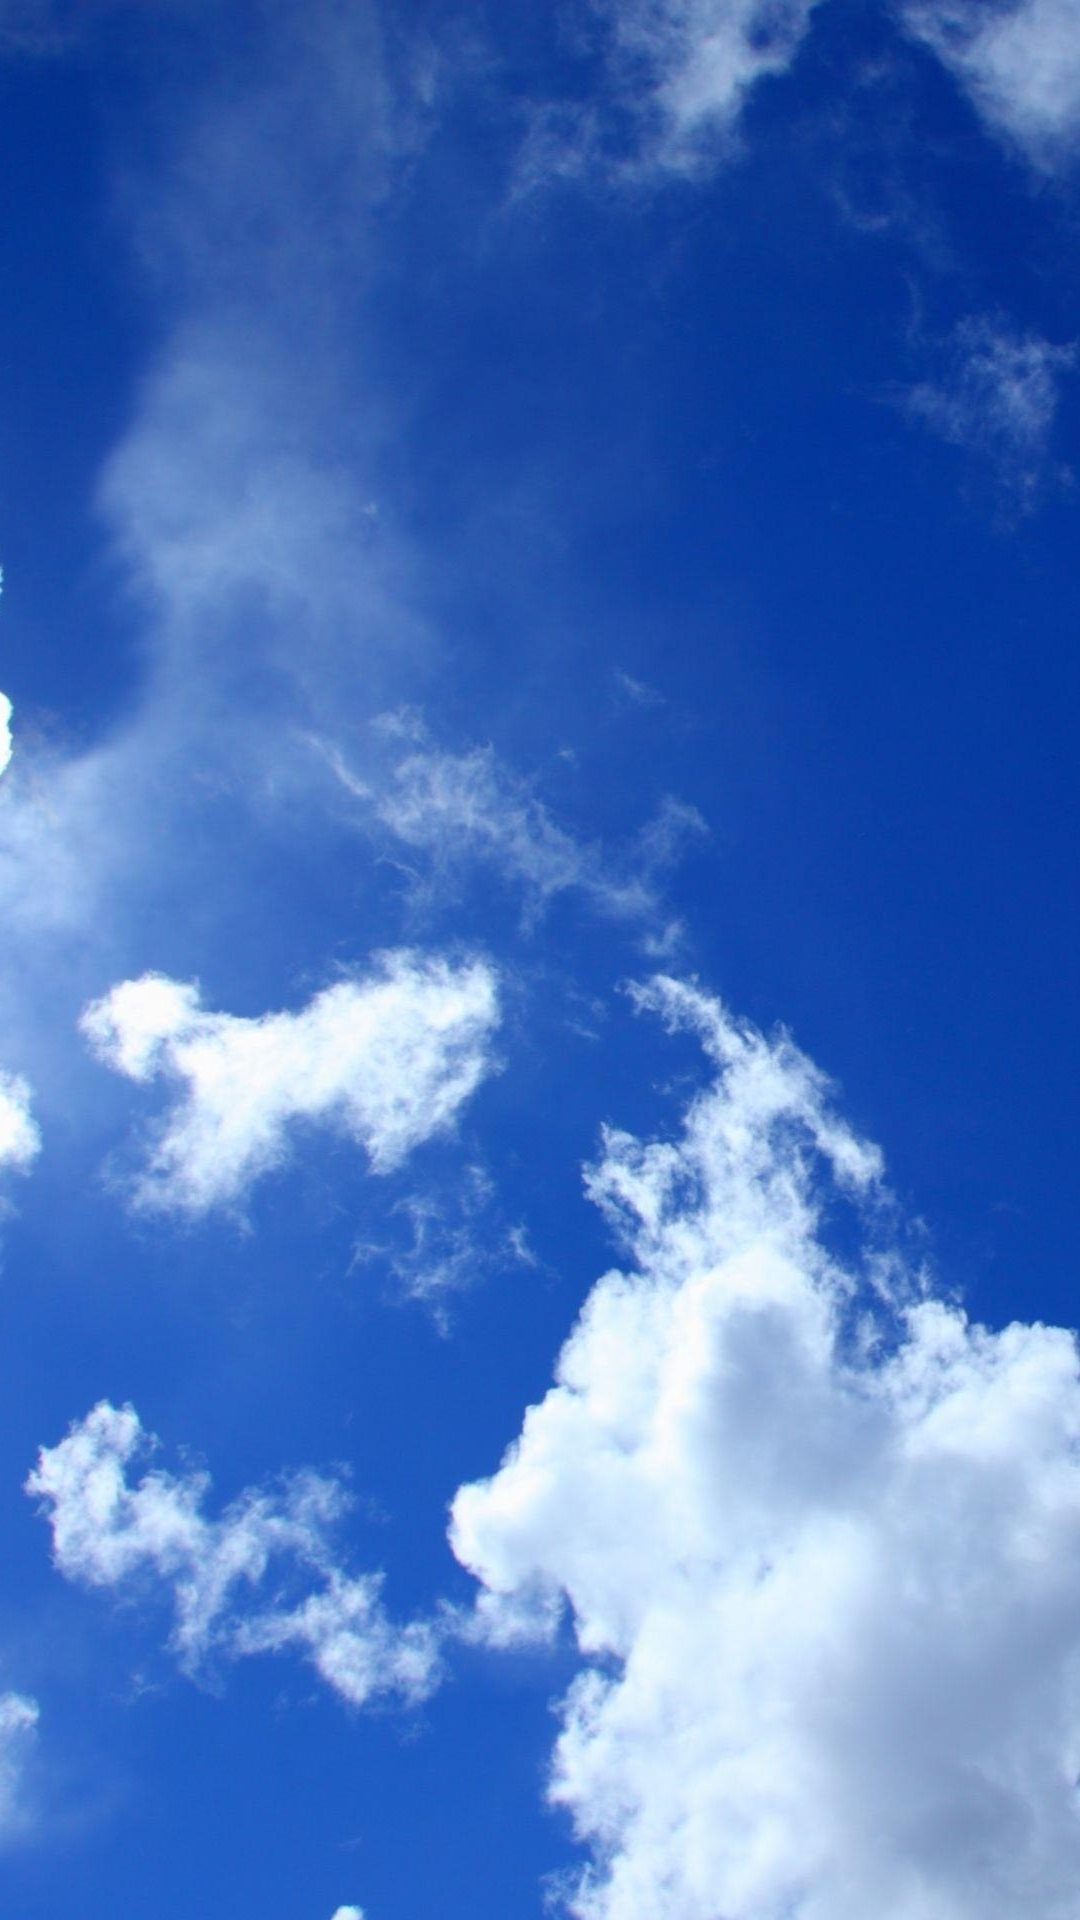 Blue Sky White Clouds Lockscreen Android Wallpaper …